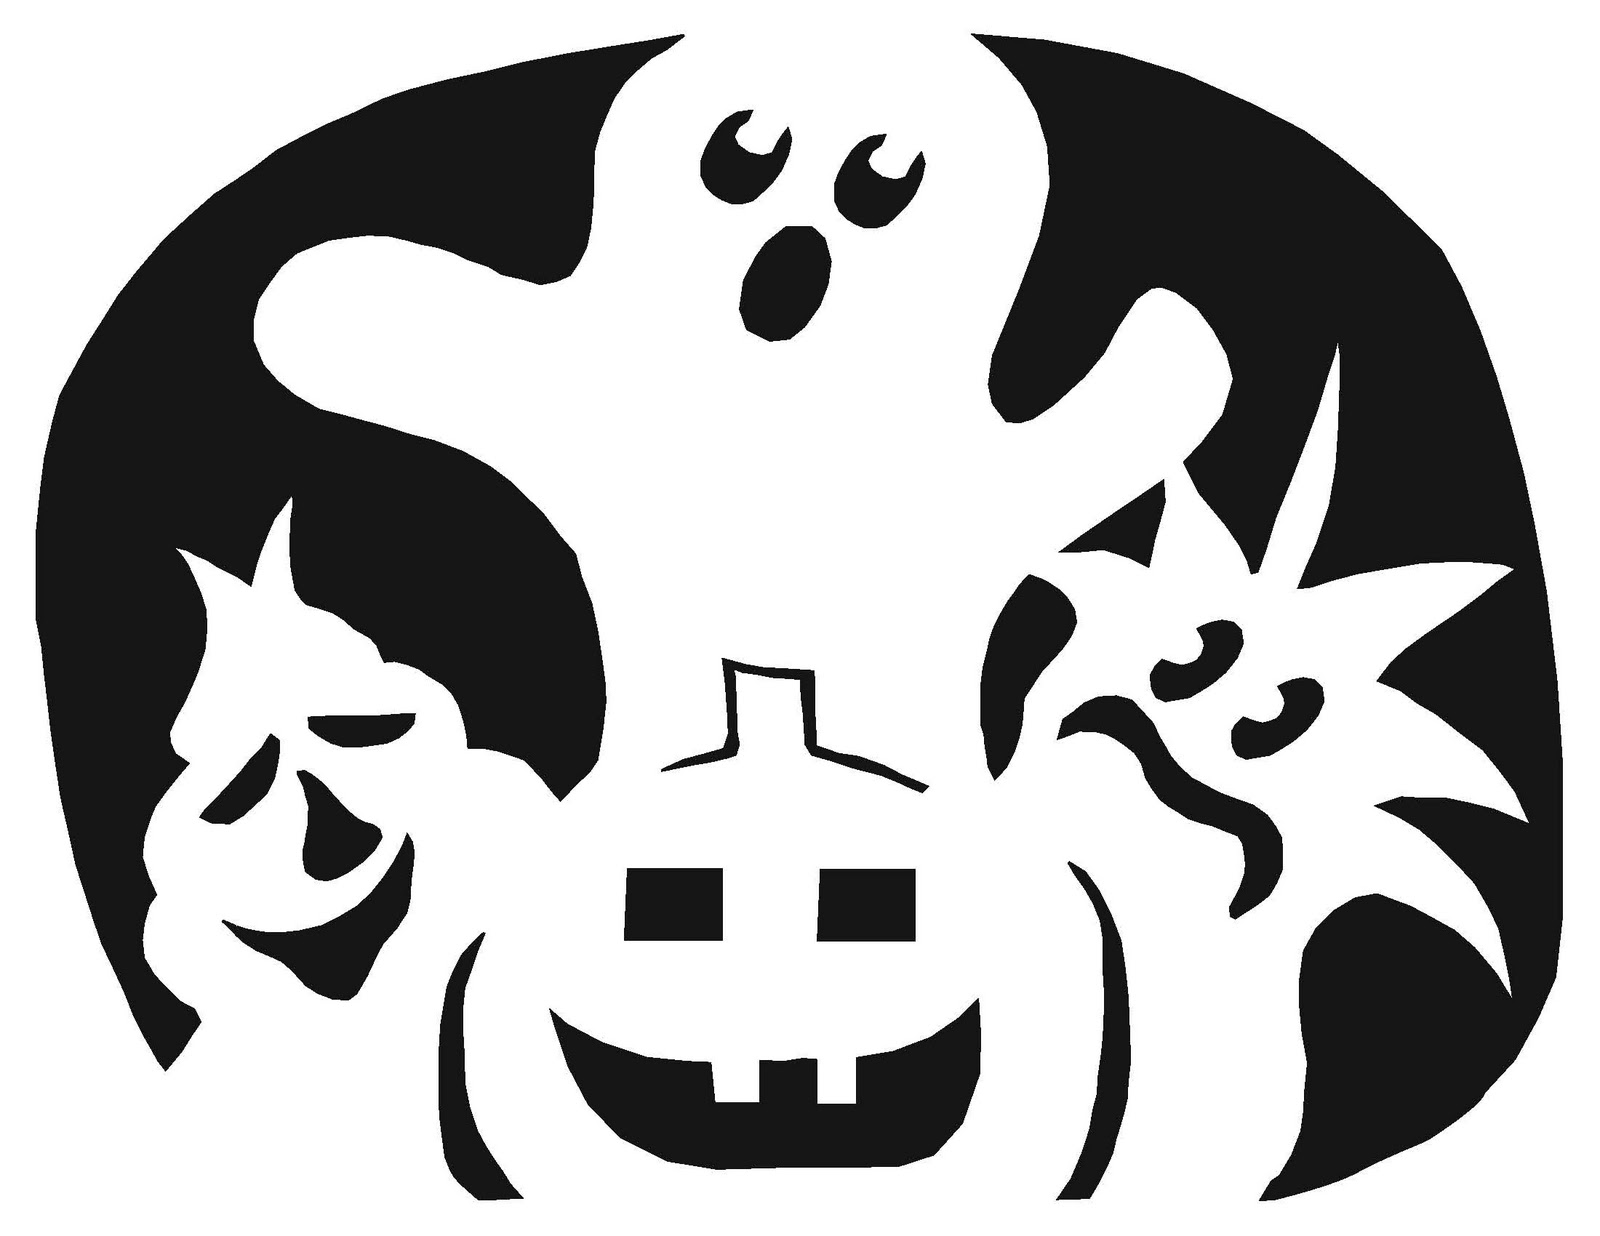 It is a graphic of Declarative Stencils for Pumpkins